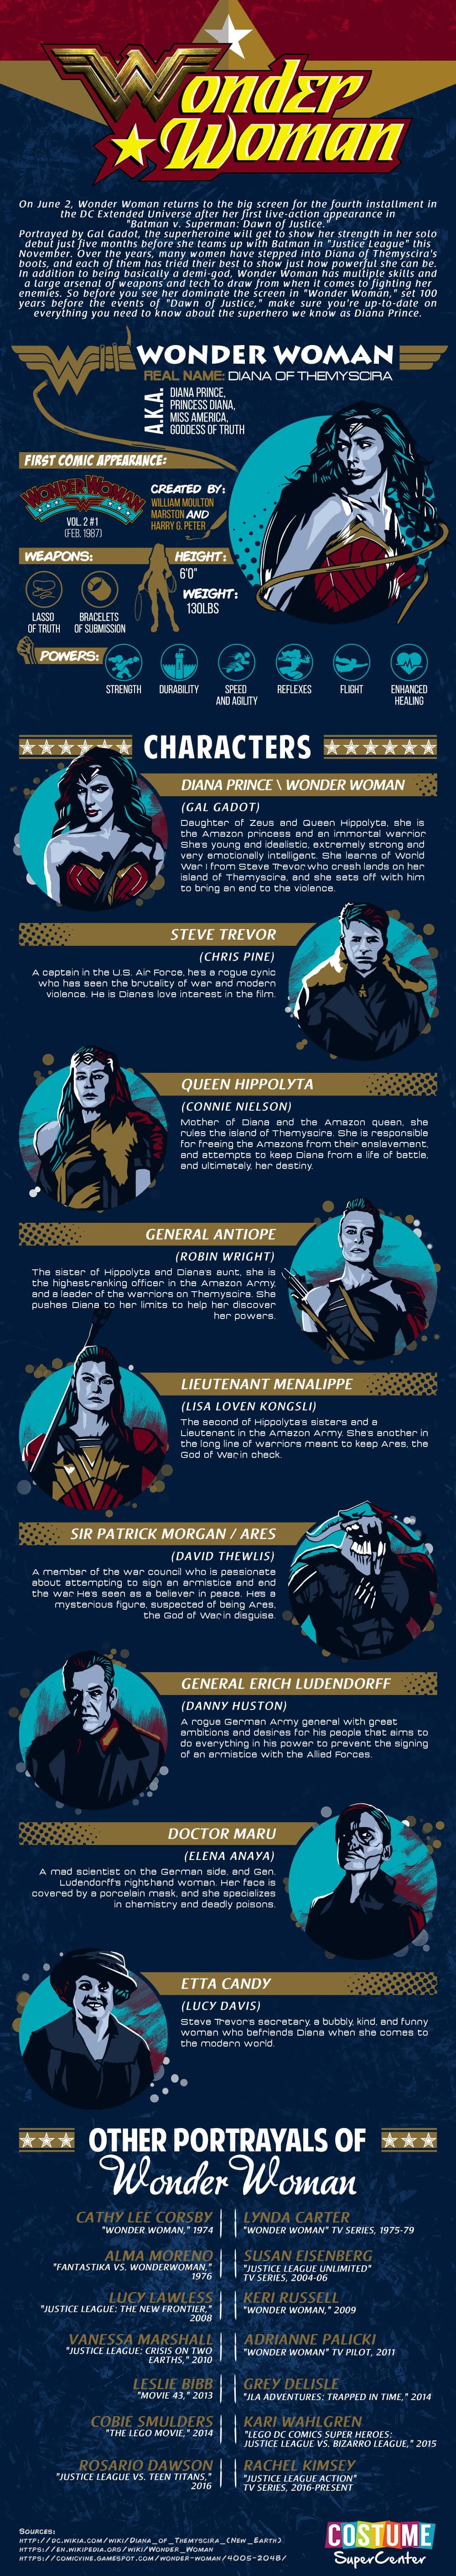 Wonder Woman Movie Characters #Infographic